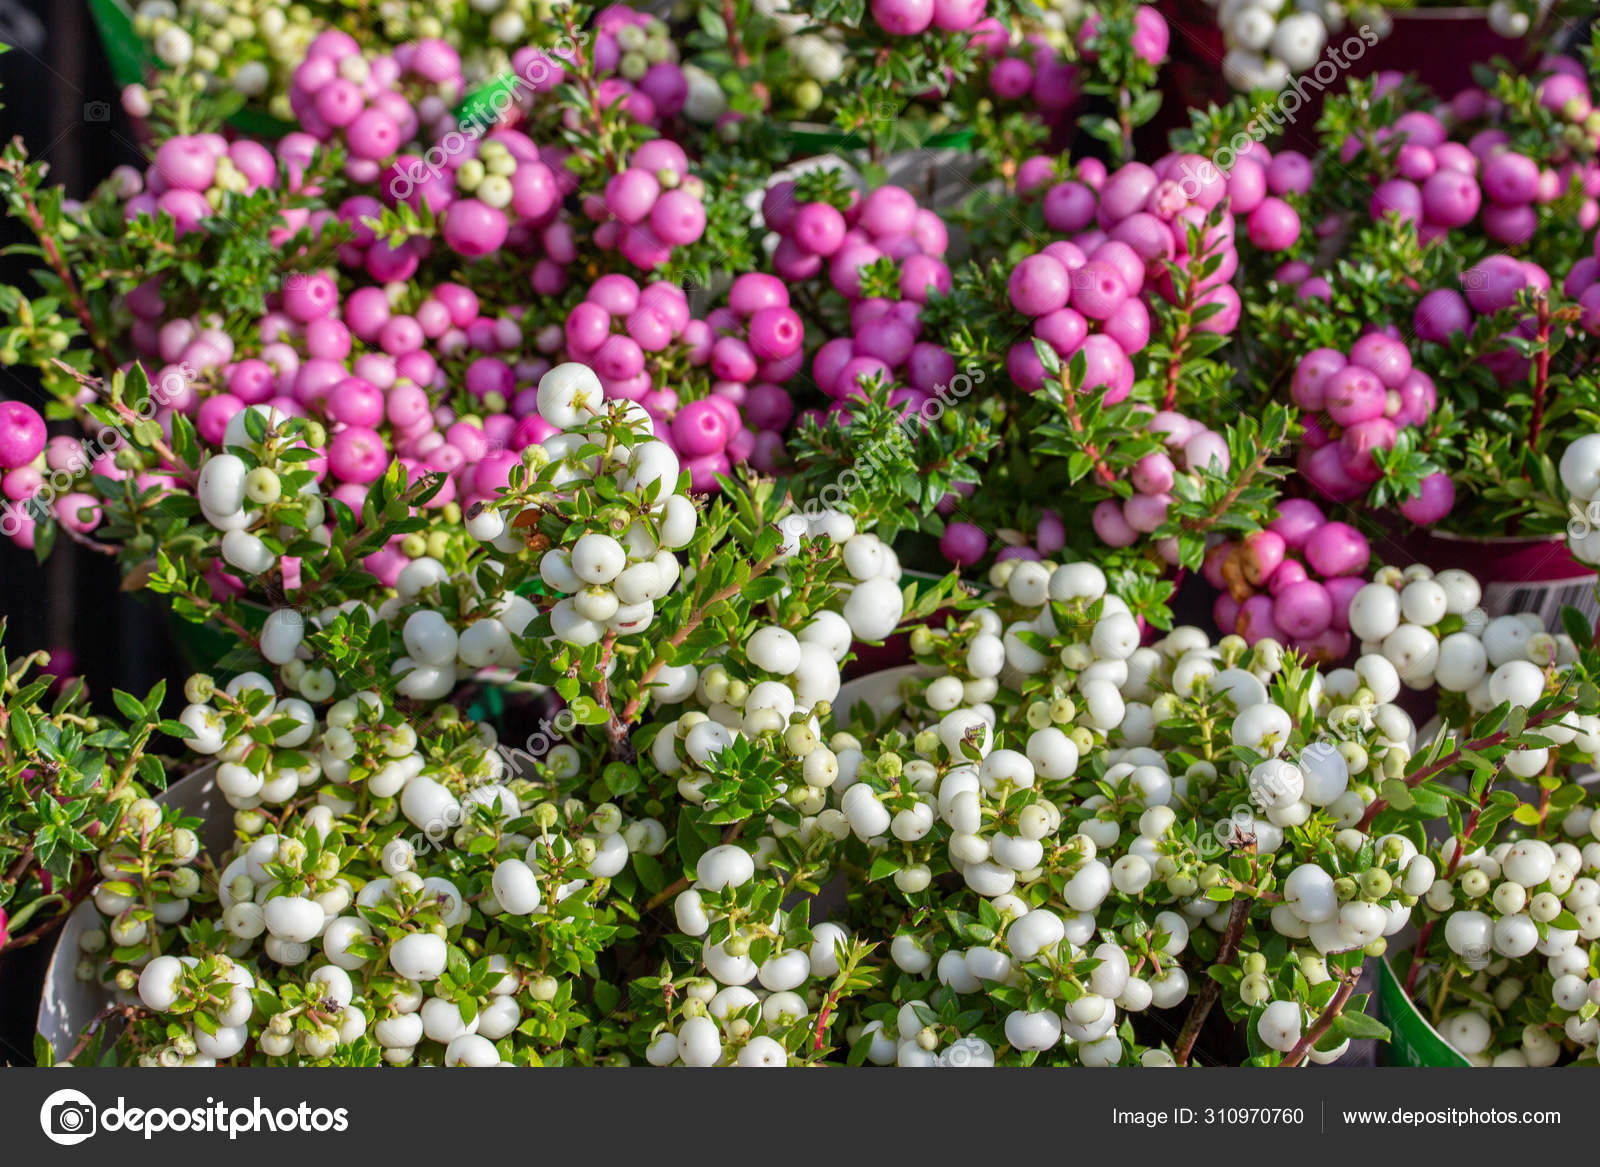 Pernettya Pink.Pernettya Spiky Berry Fruit White Pink Purple Harvest Gaultheria Mucronata Autumn Background Wallpaper Stock Photo C Olakorica 310970760